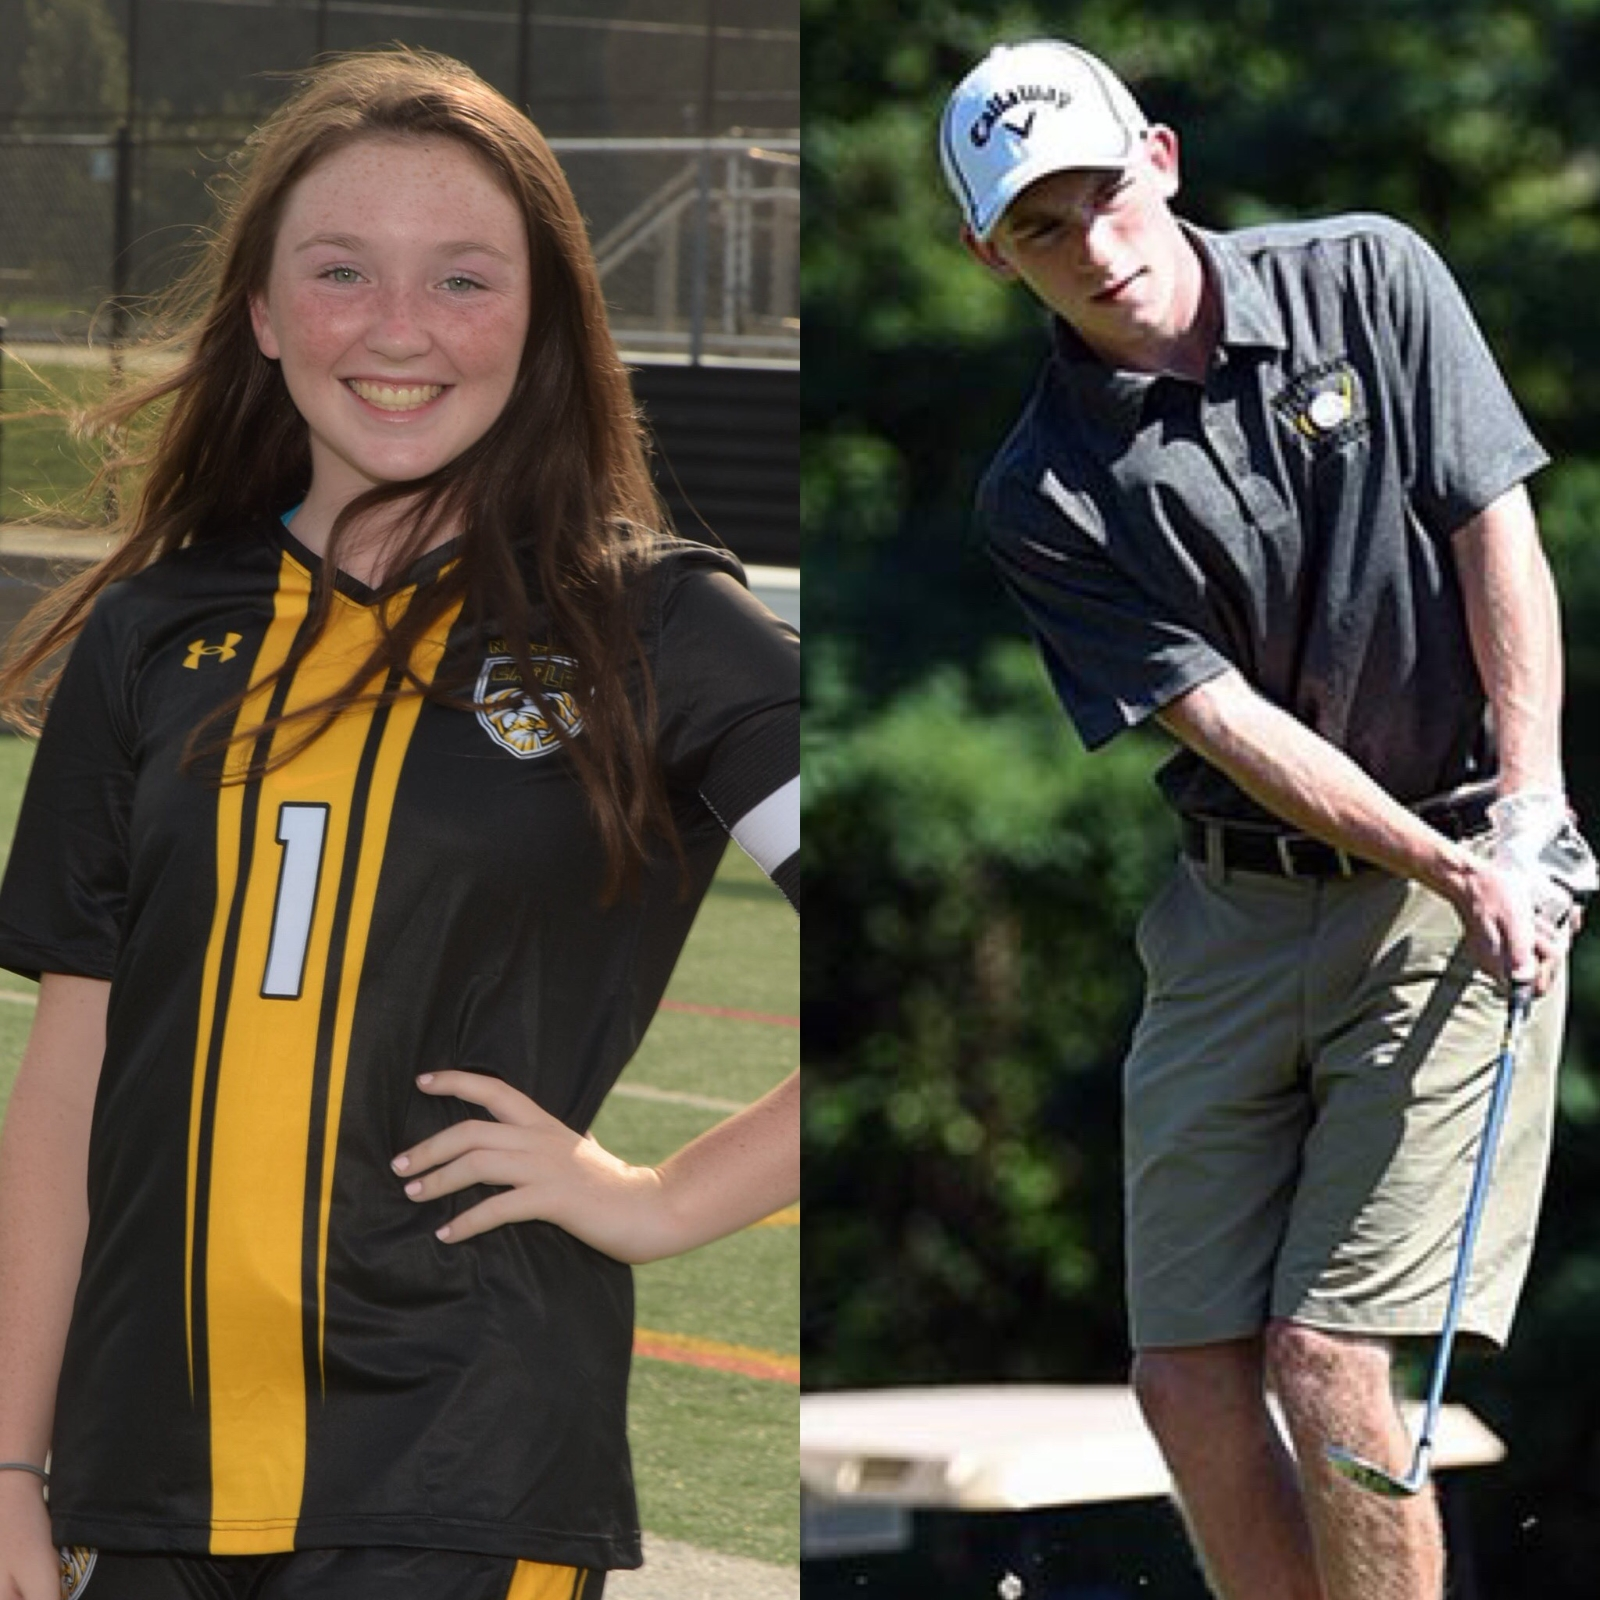 NHS Athletics October Athletes of the Month: Evelyn Cronise and Brendan Heptner